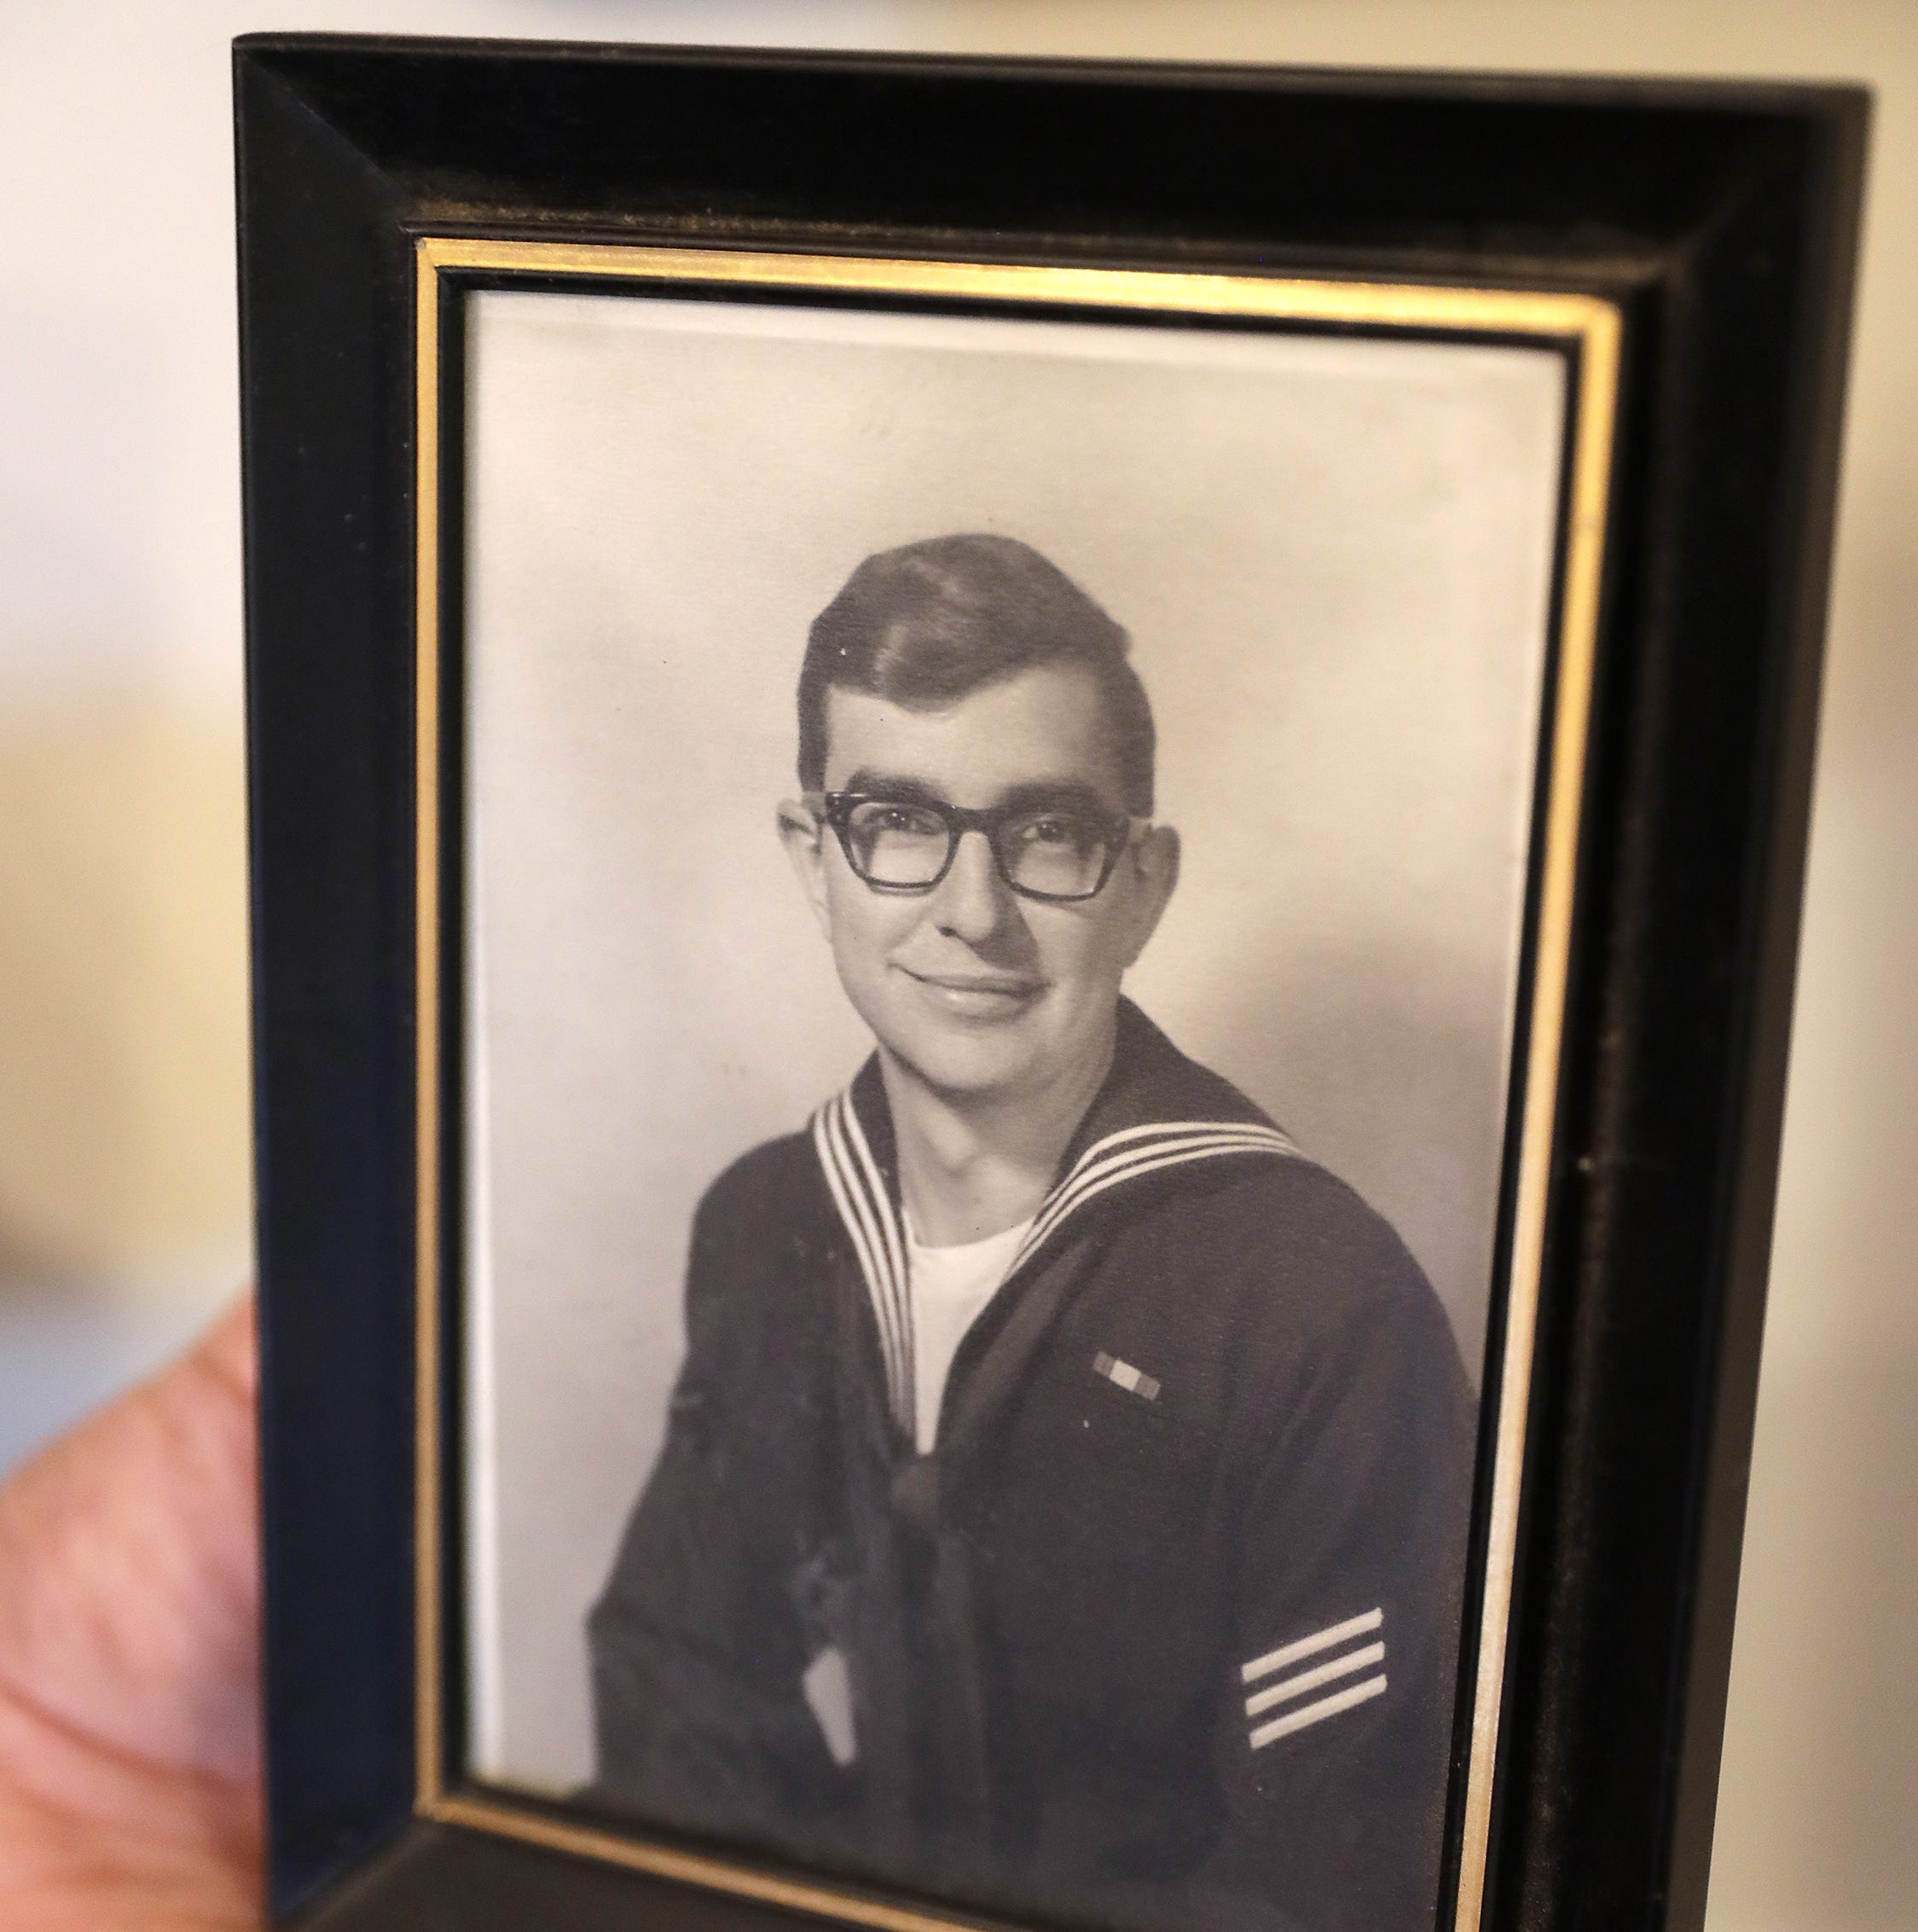 'A slap in the face': Naval disaster was too far from Vietnam to honor victims on memorial wall